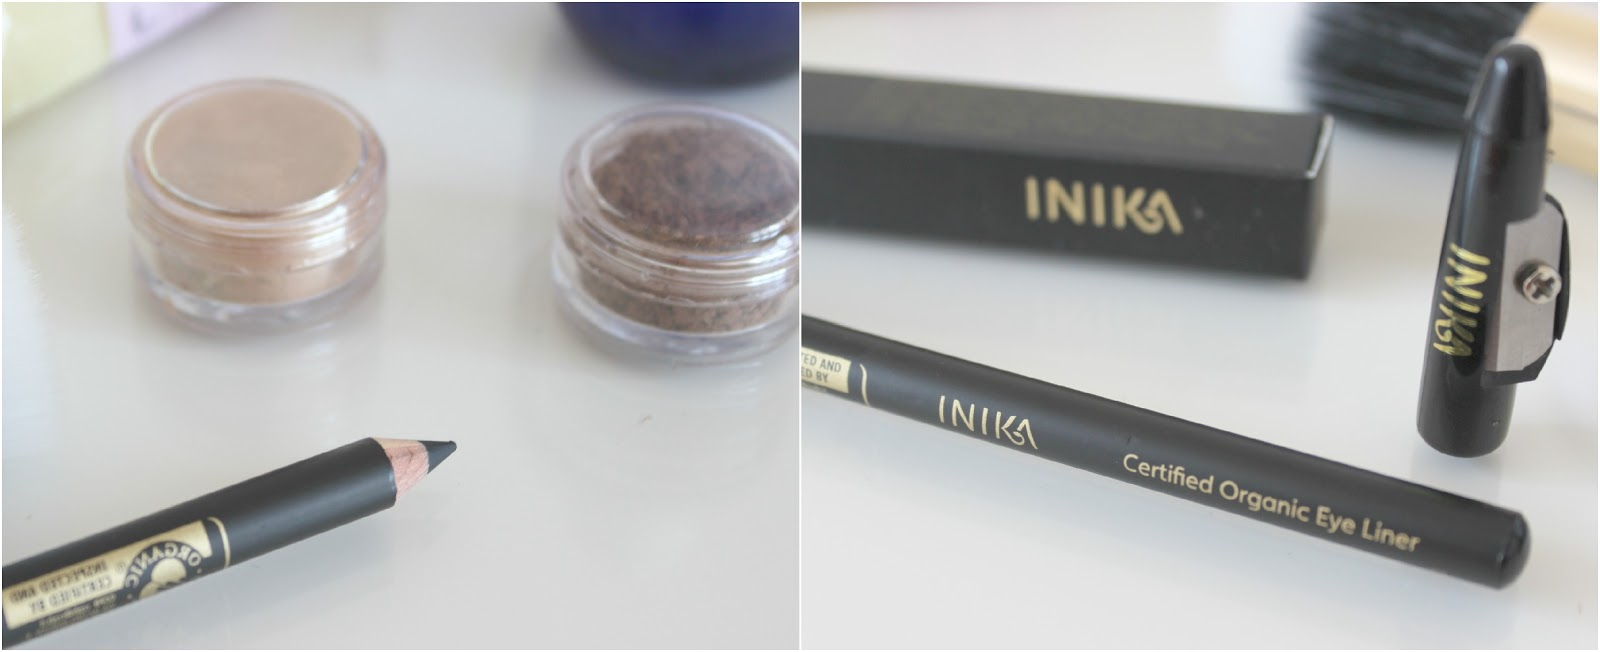 A picture of vegan friendly Inika Black Caviar Eyeliner